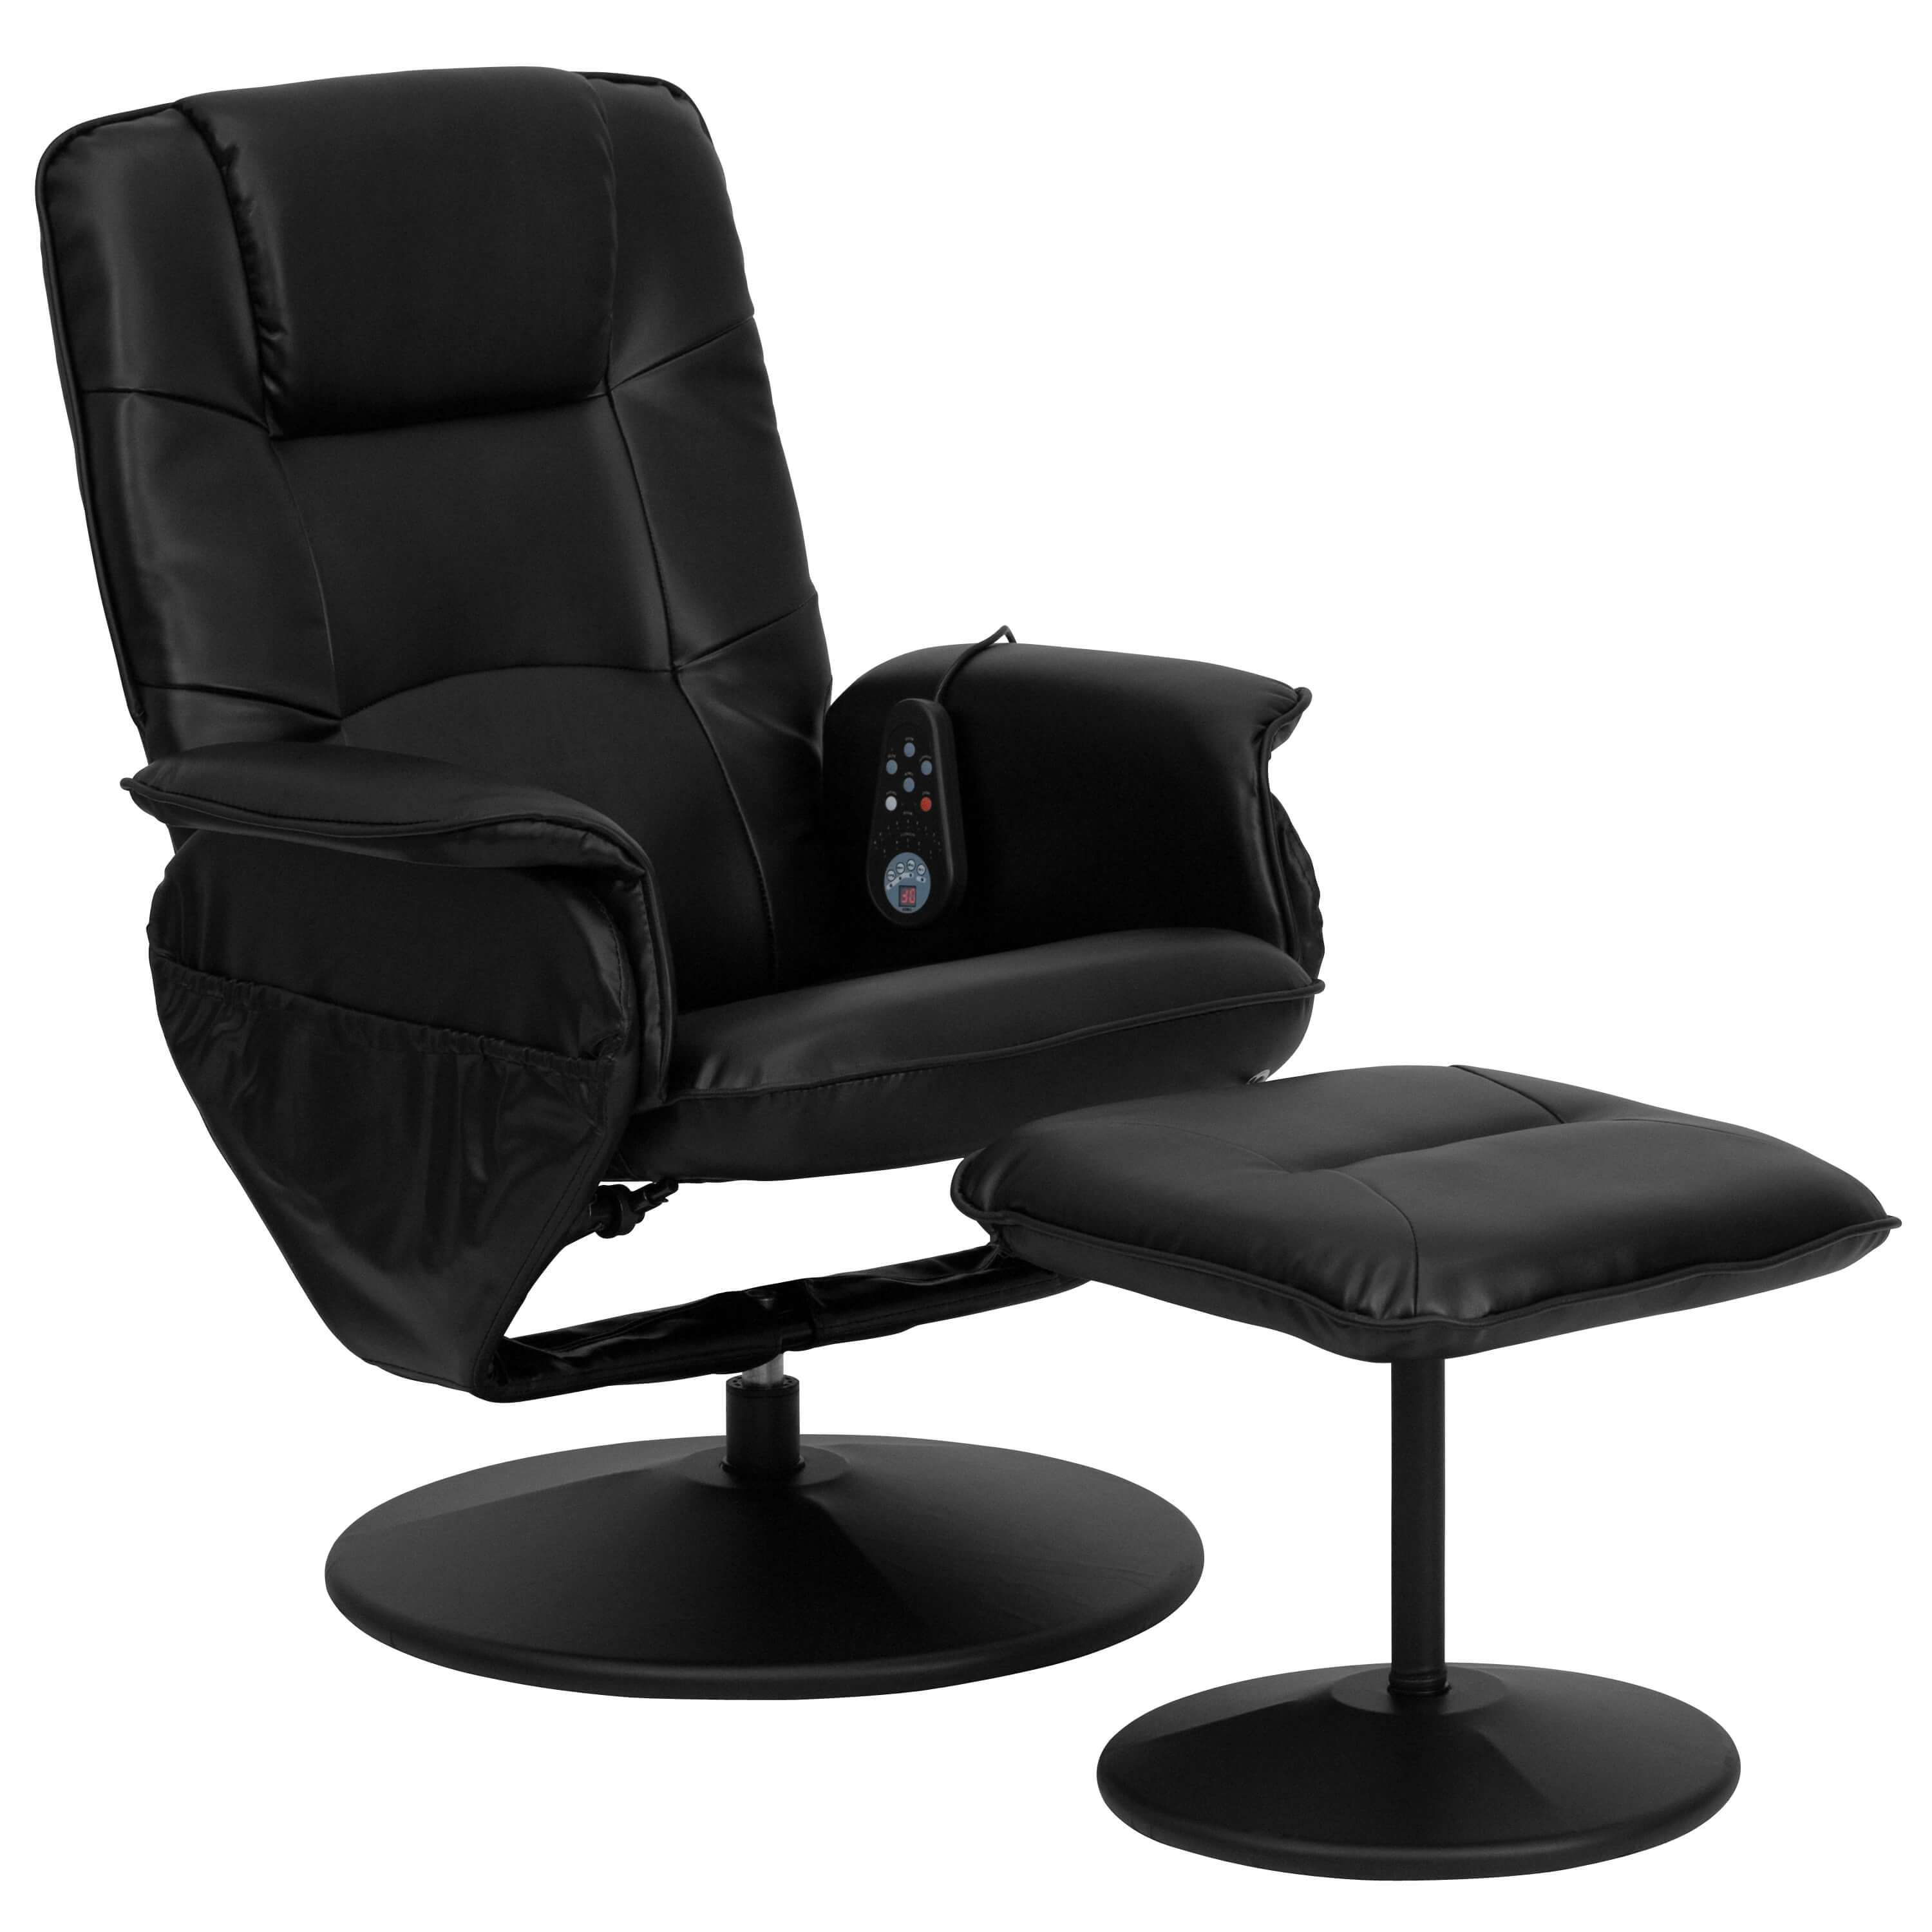 contemporary-recliners-recliner-chair-with-massage.jpg